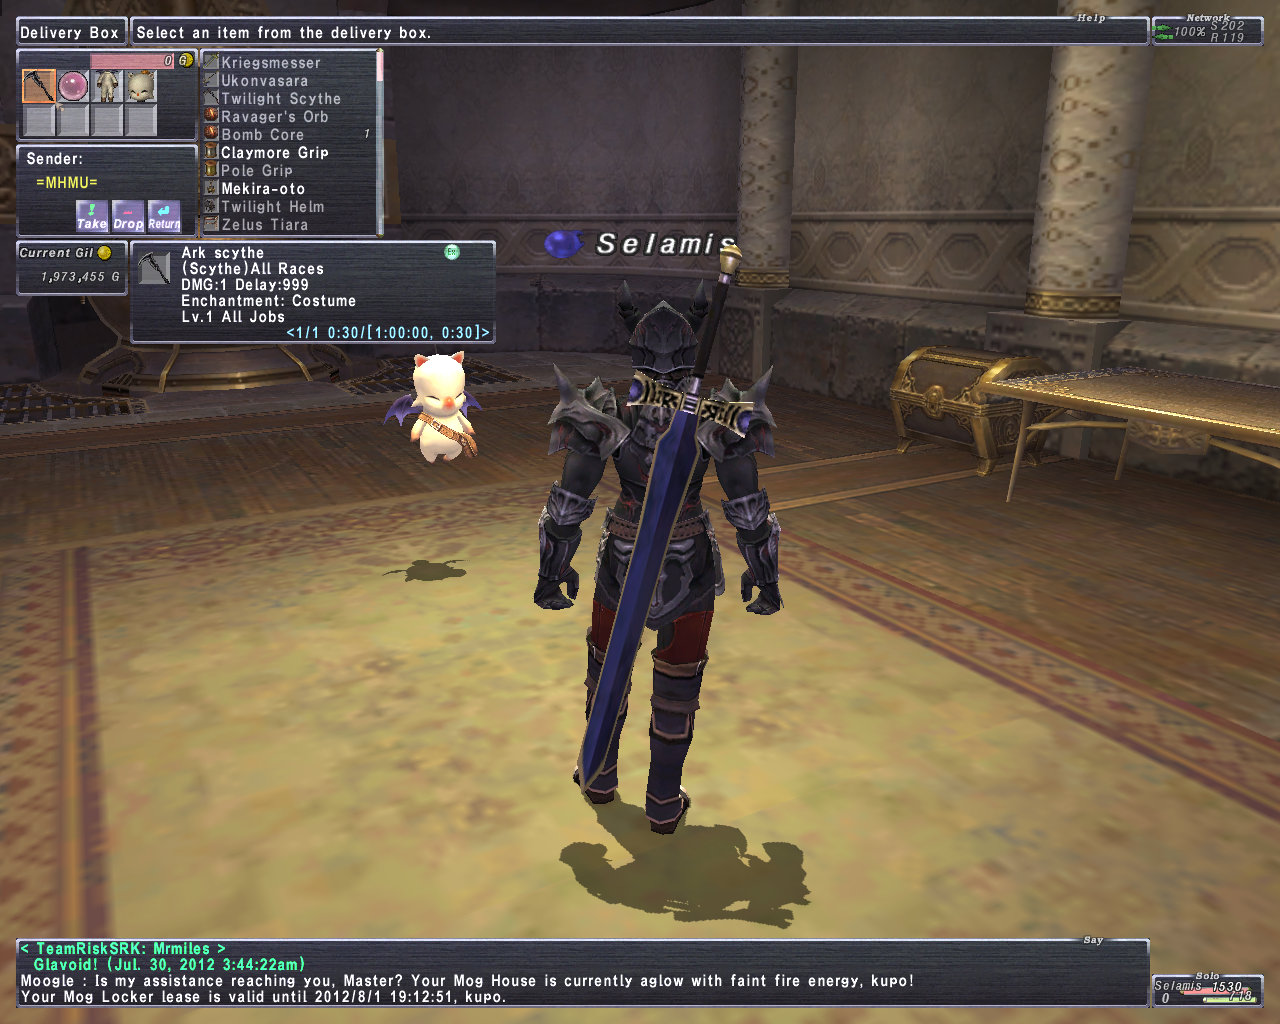 selamis ffxi prize scythe that consolation kill worth anything didnt losers sadly actual wasnt begun hitting giveaway vanafest golden gobbiebag isnt bitching about talking